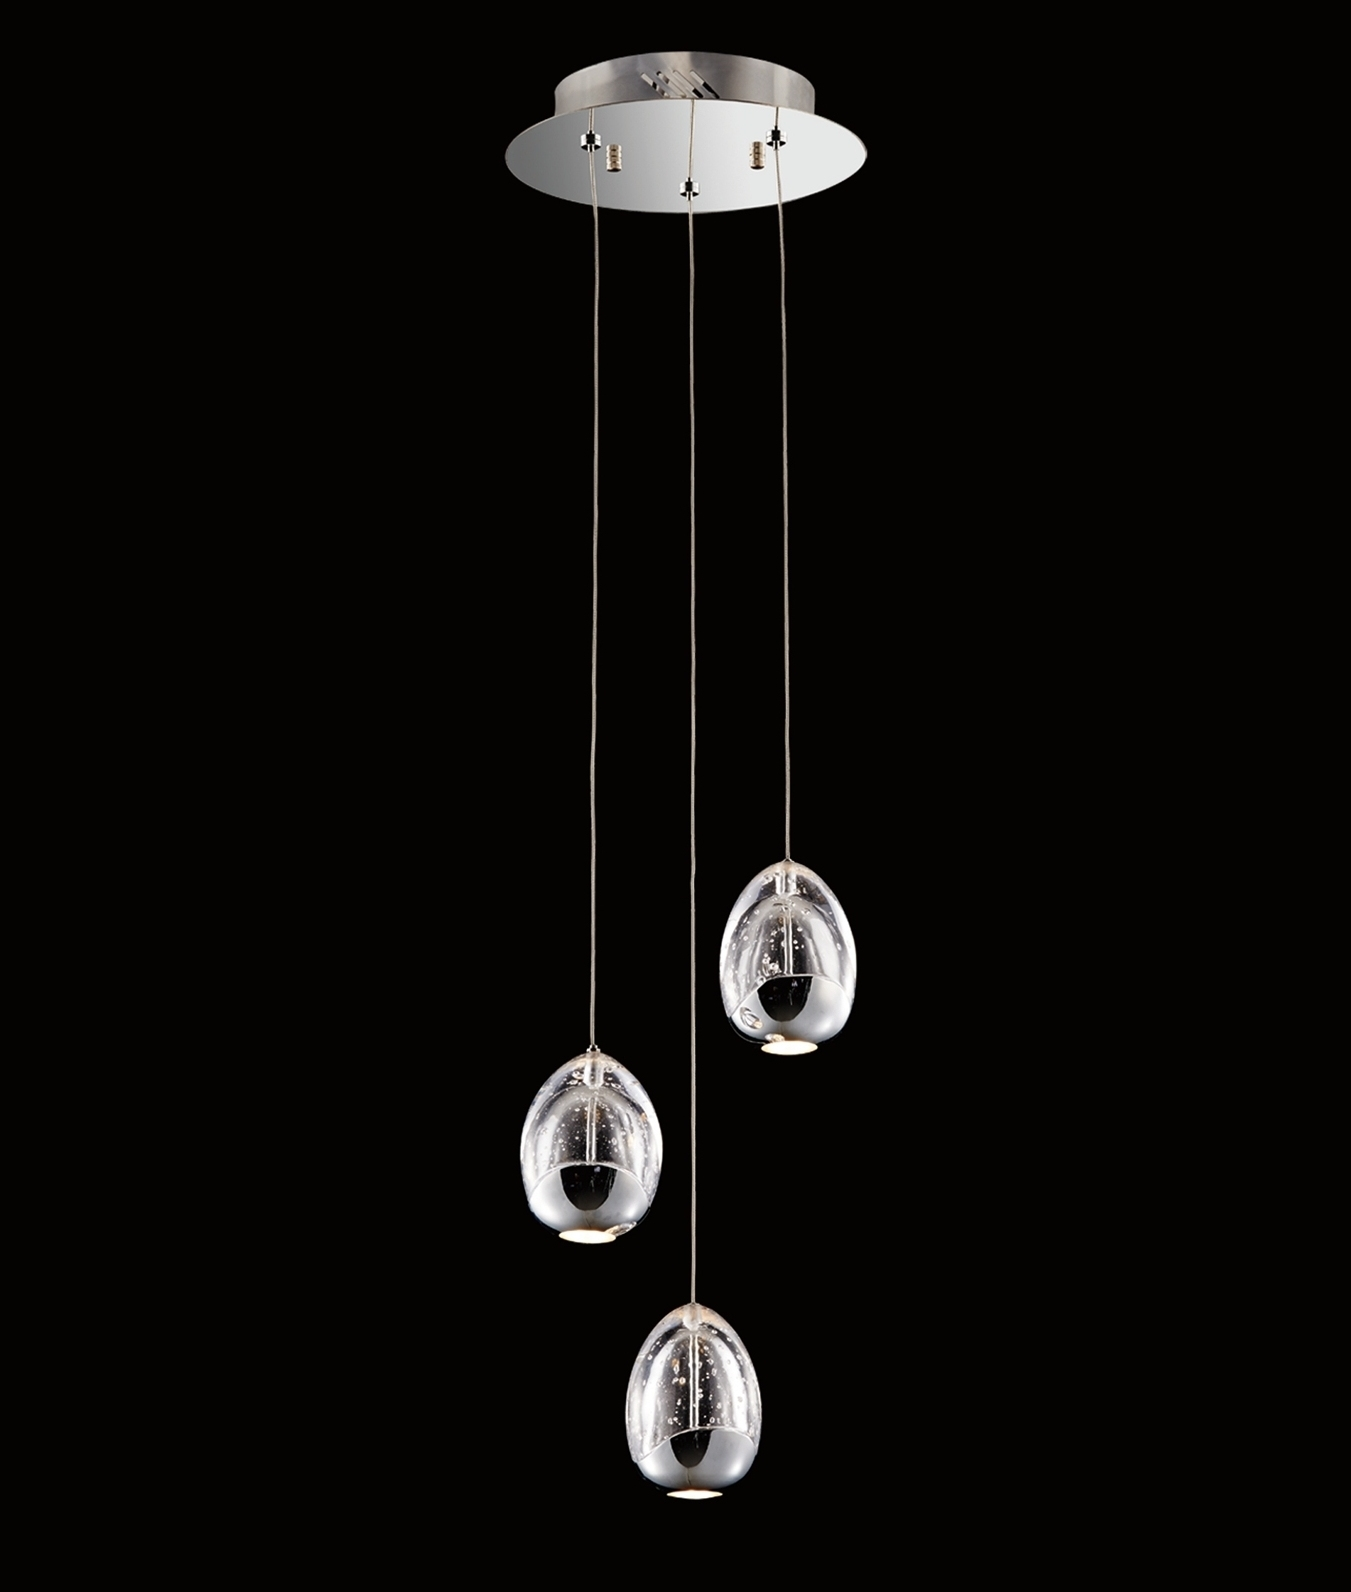 Light Pendants Led Light Pendants With A 1 5m Drop